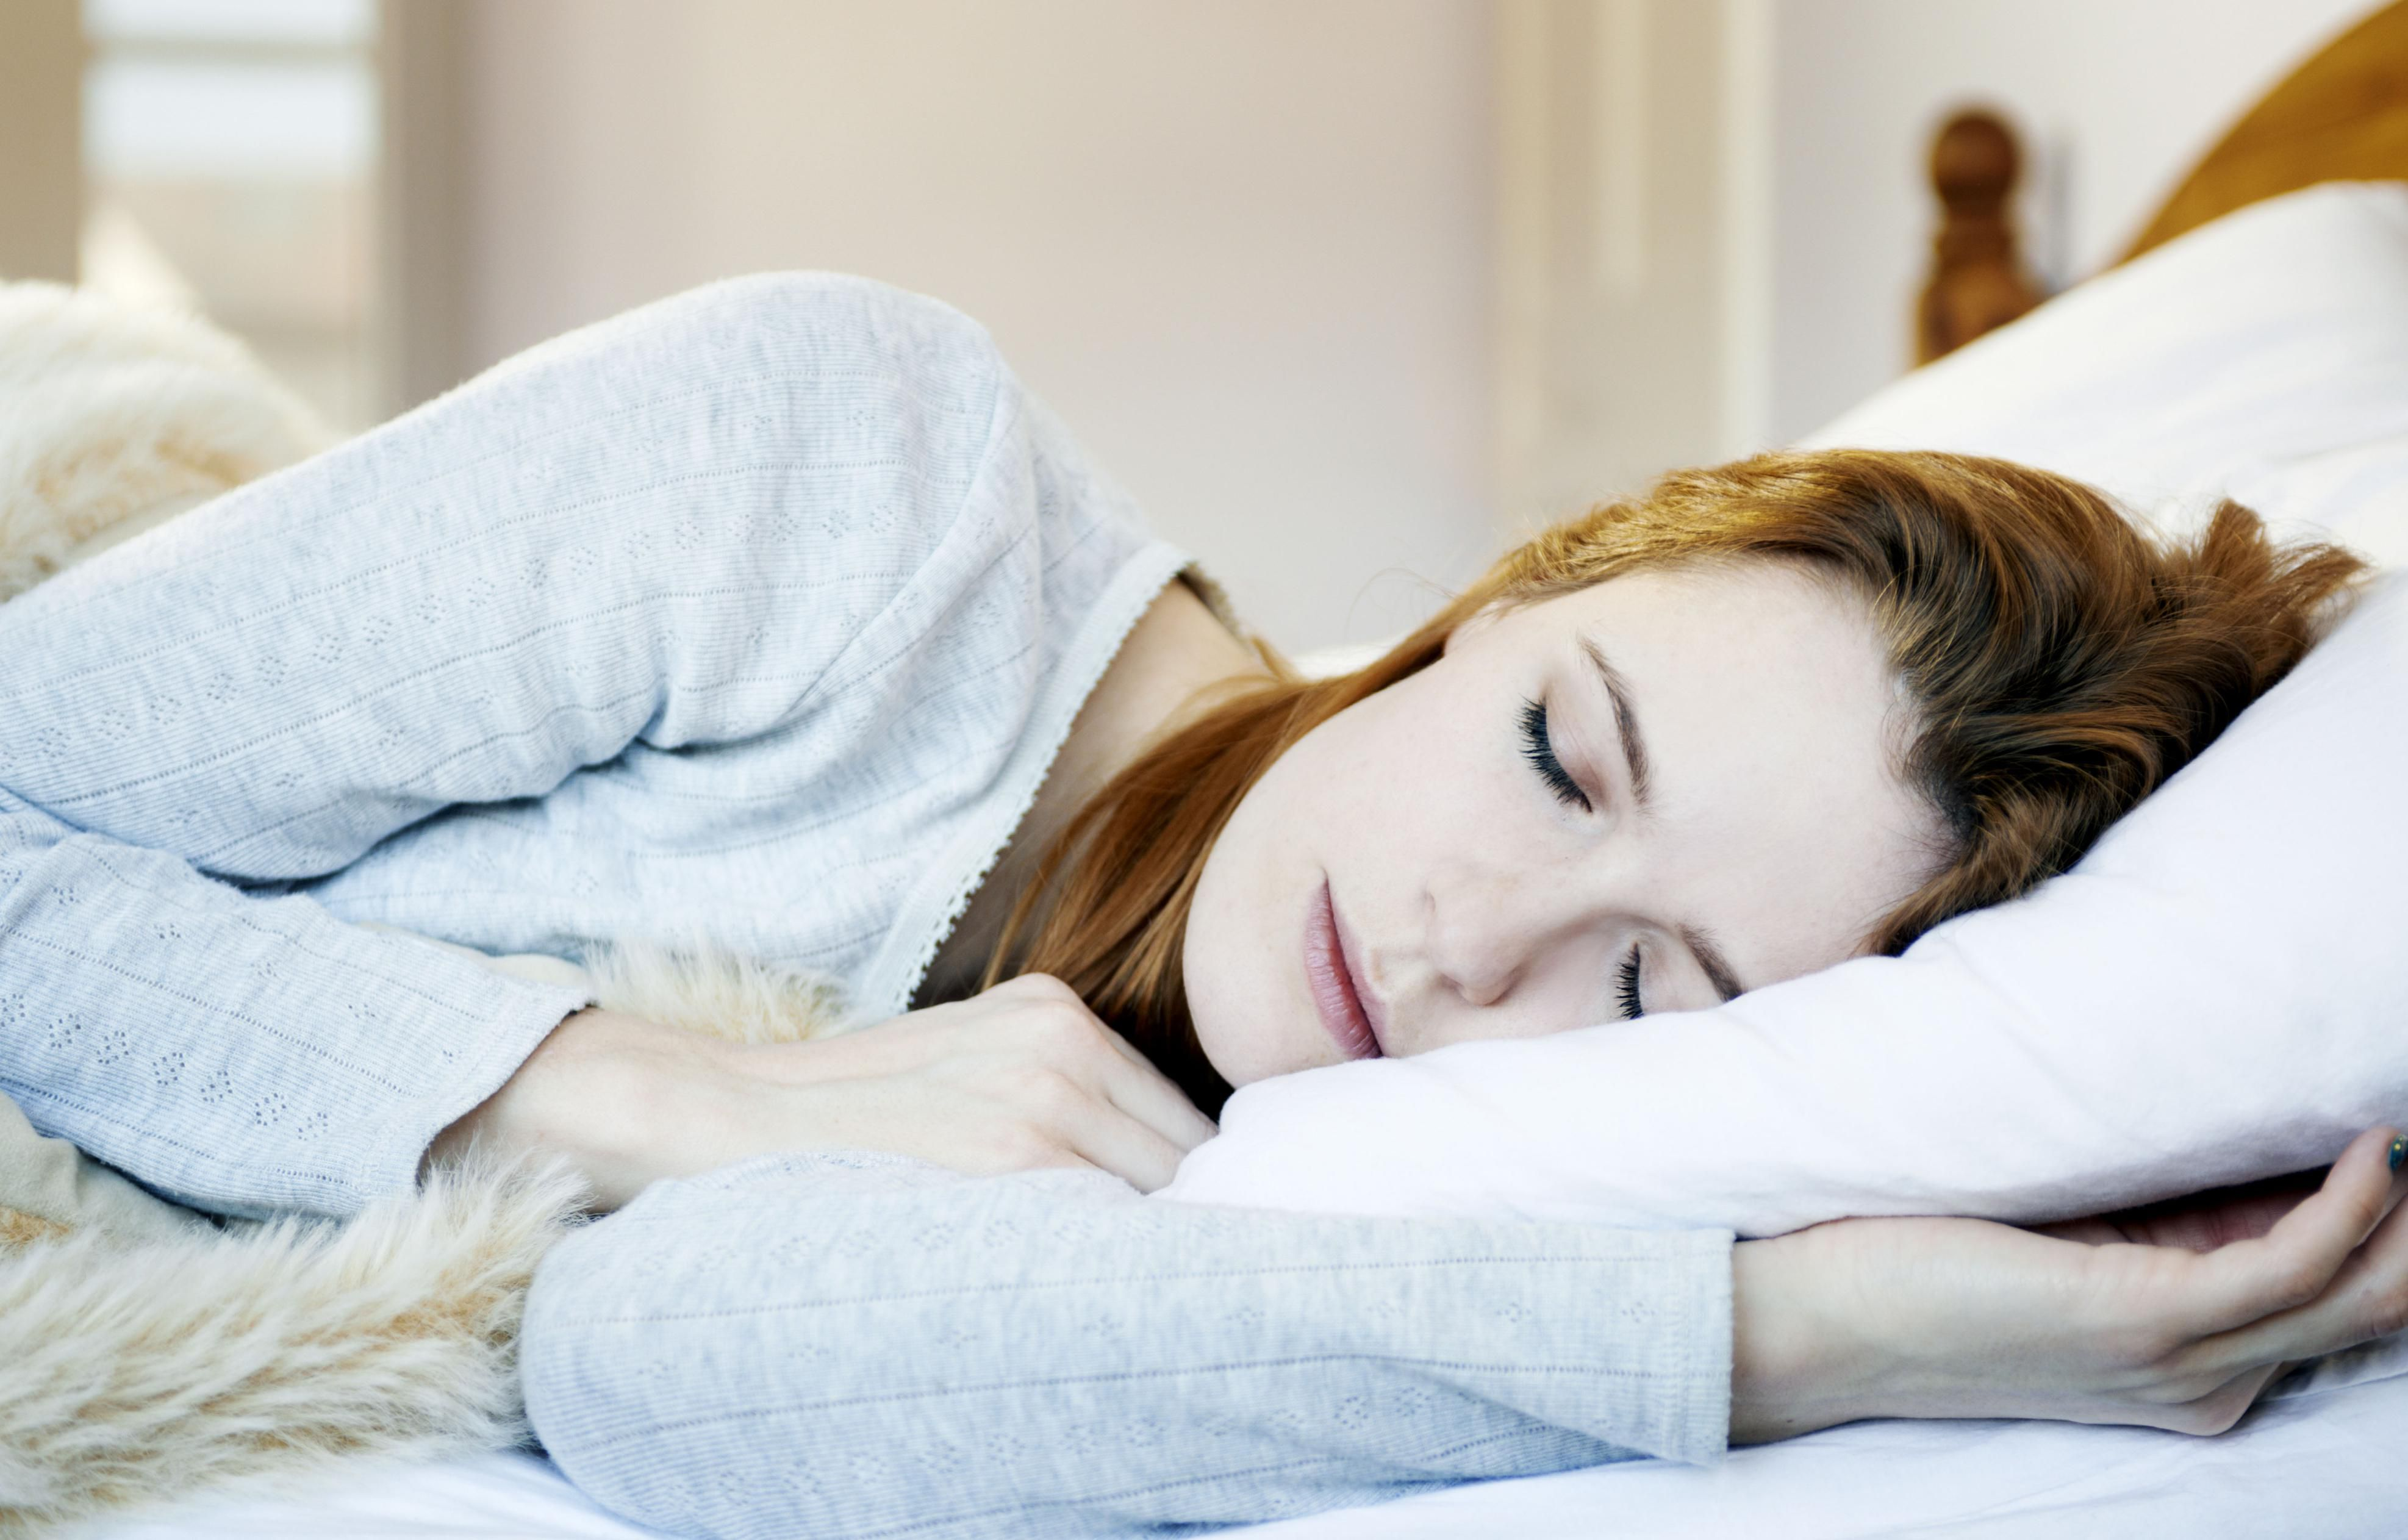 sleeping and dreaming essay Daydreaming essays daydreaming has some sleeping dreams and daydreams are similar because it may also project our worst fear like dreaming of something that.